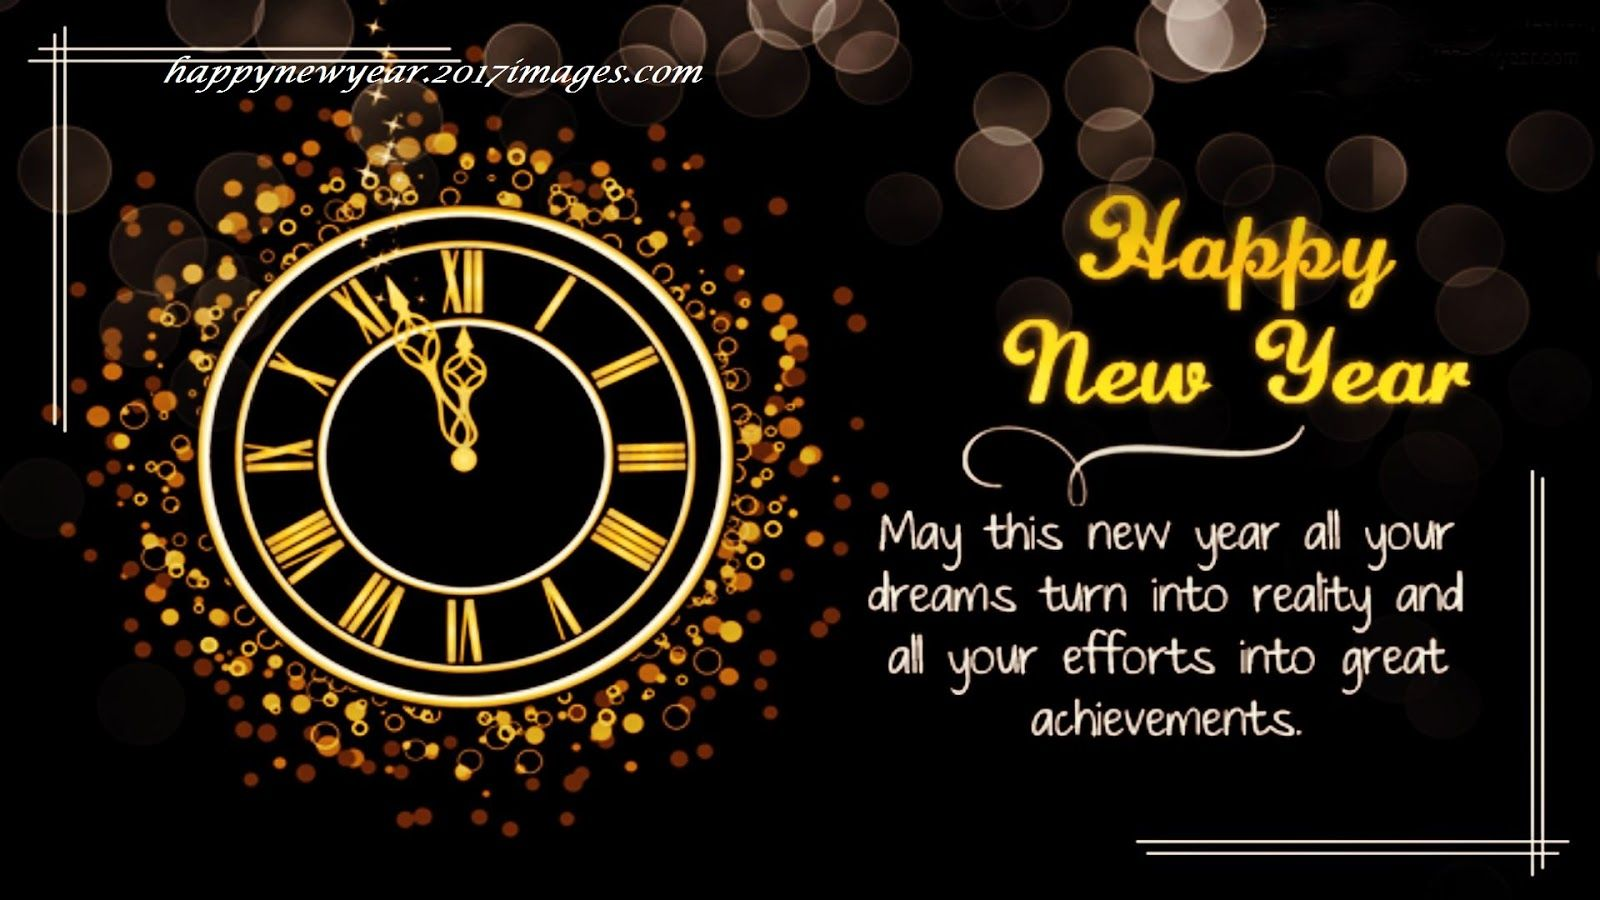 Top 18+ Happy New Year 2017 Wallpapers, Happy New Year Wallpapers ...